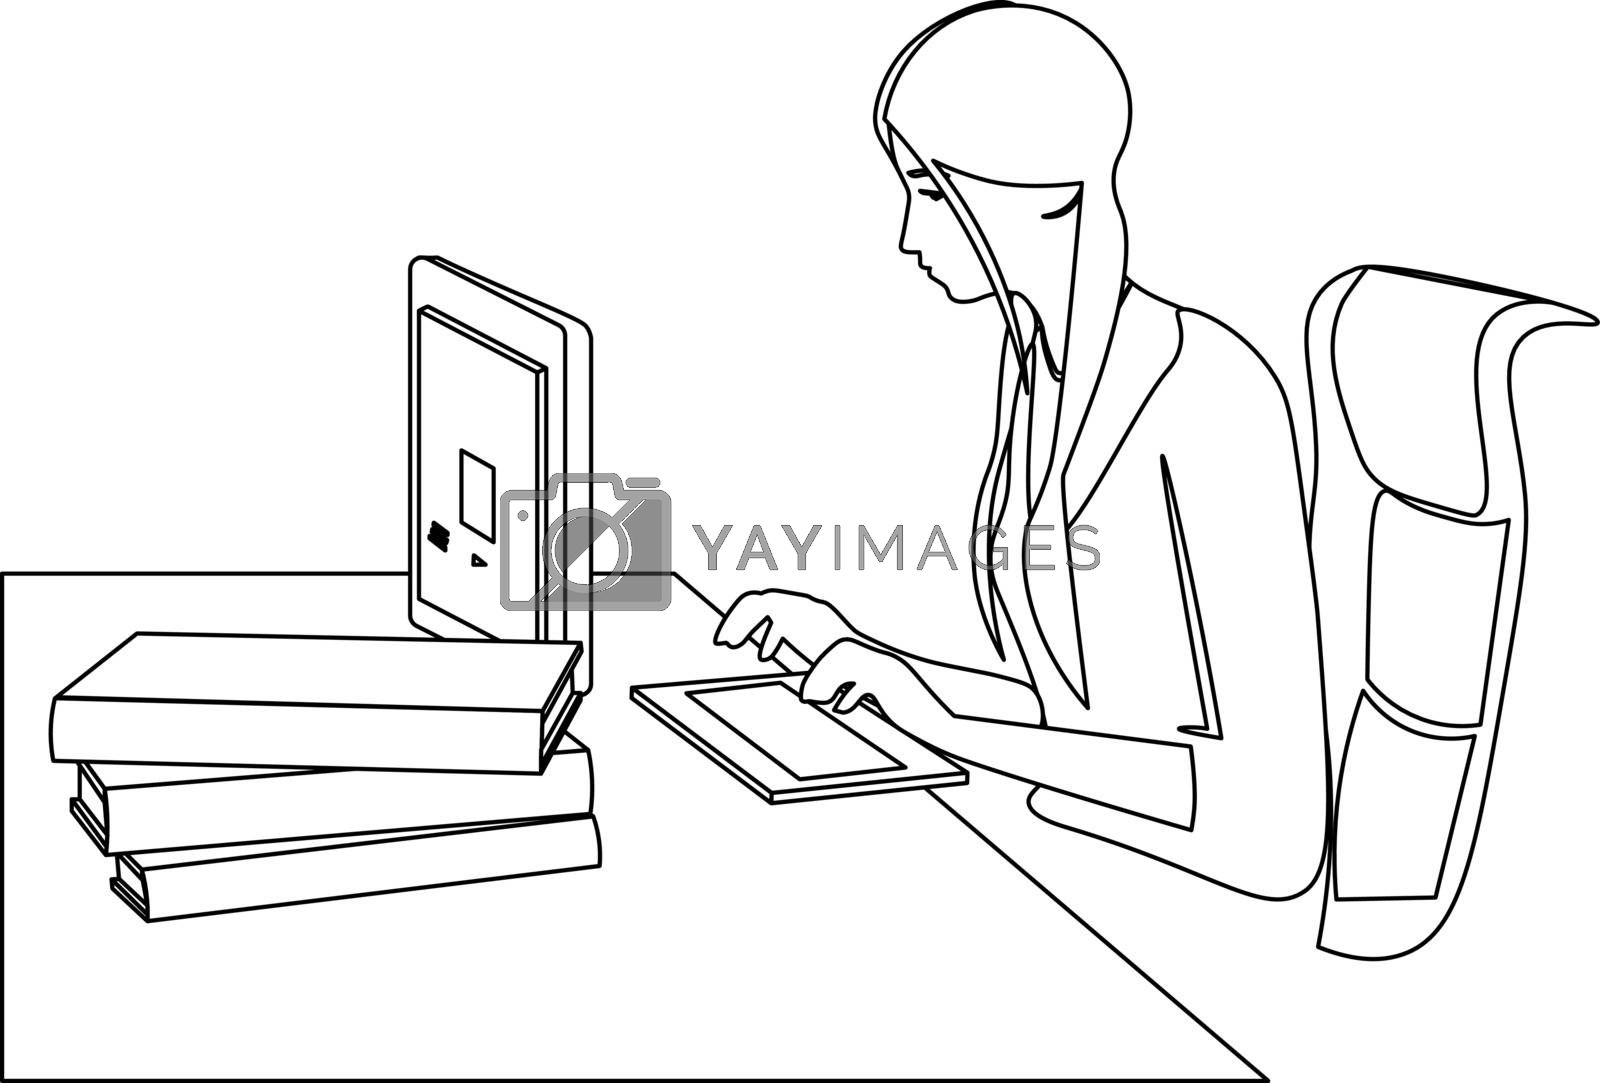 Minimal line art of workplace and the young woman sitting at the computer